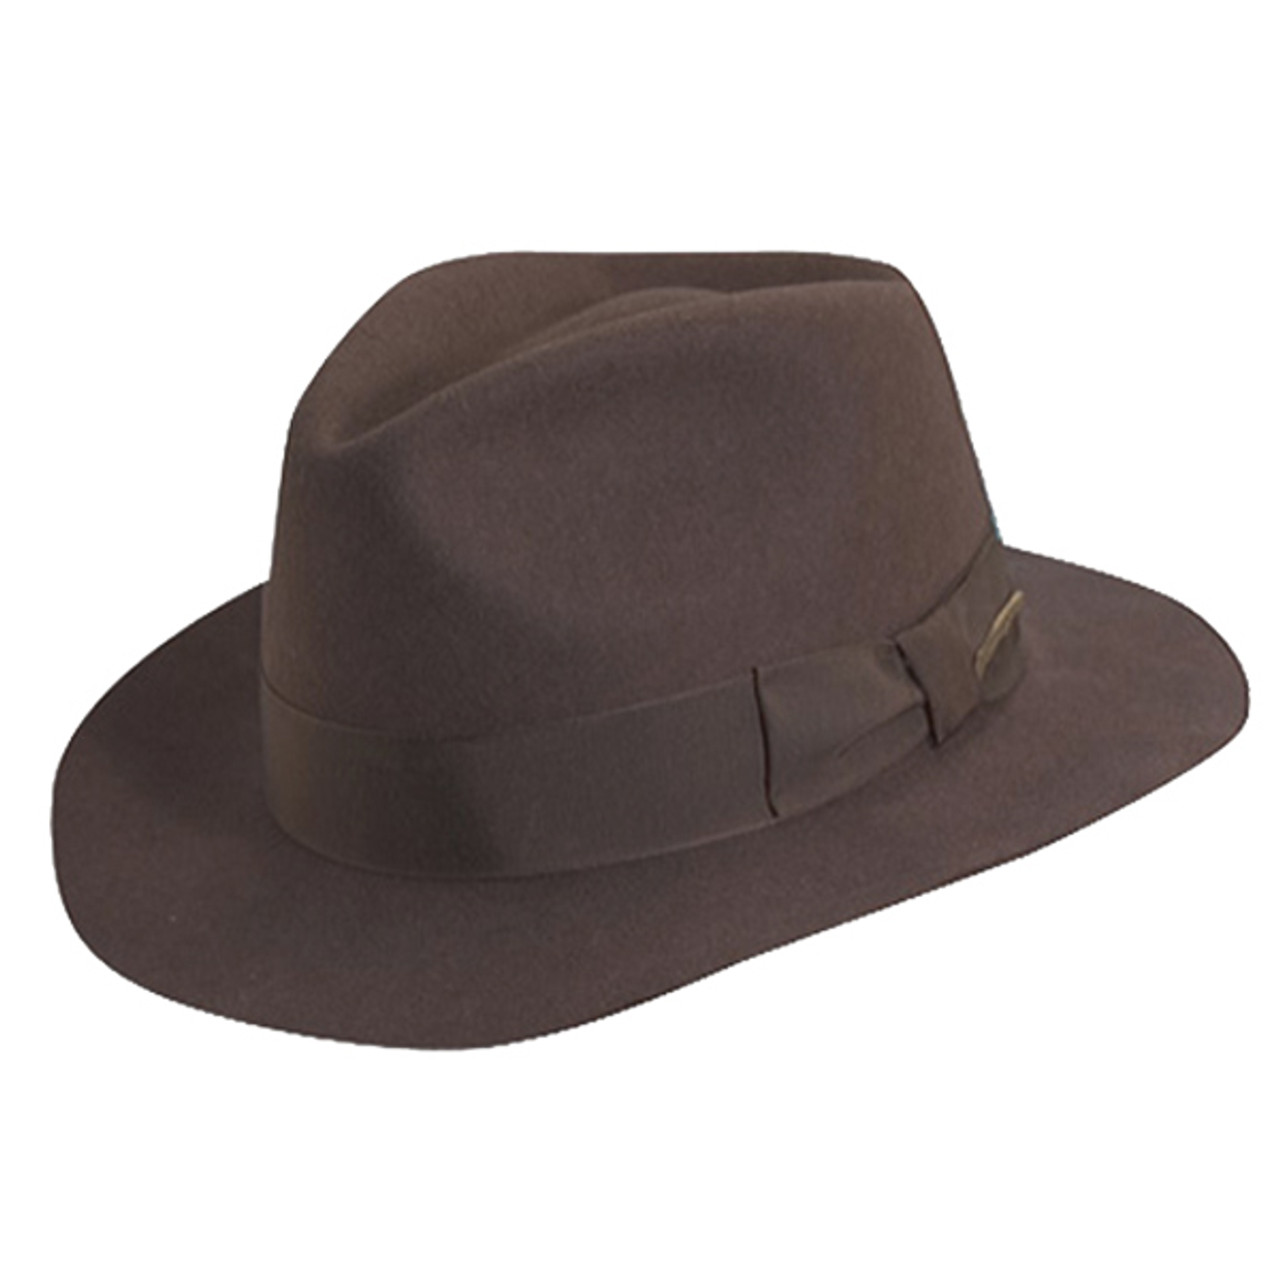 7f05585c8 Dorfman Pacific - Kids Indiana Jones Outback Hat